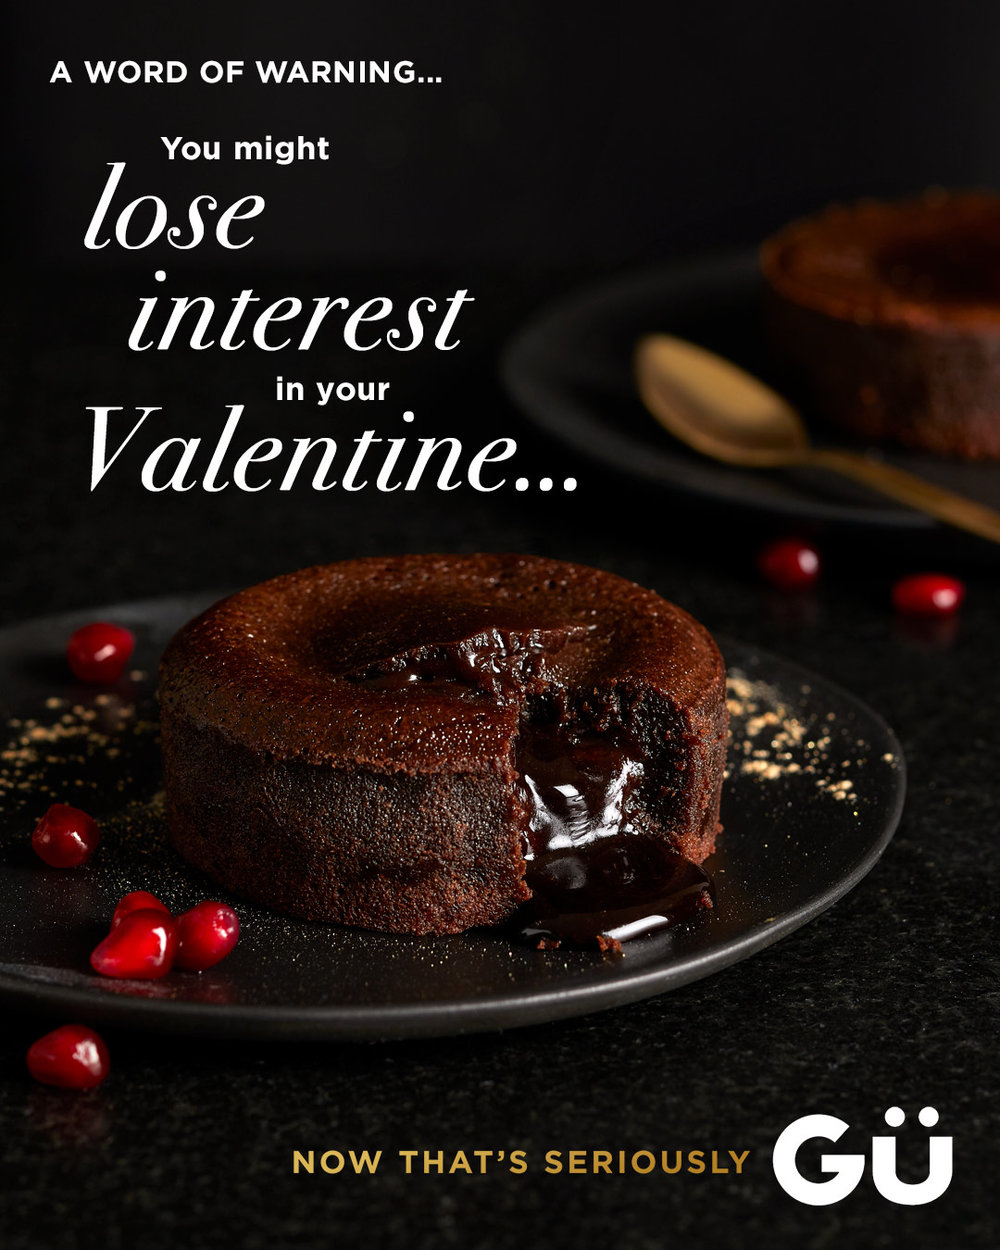 Valentines-HCMM-InFeed-with-copy.jpg